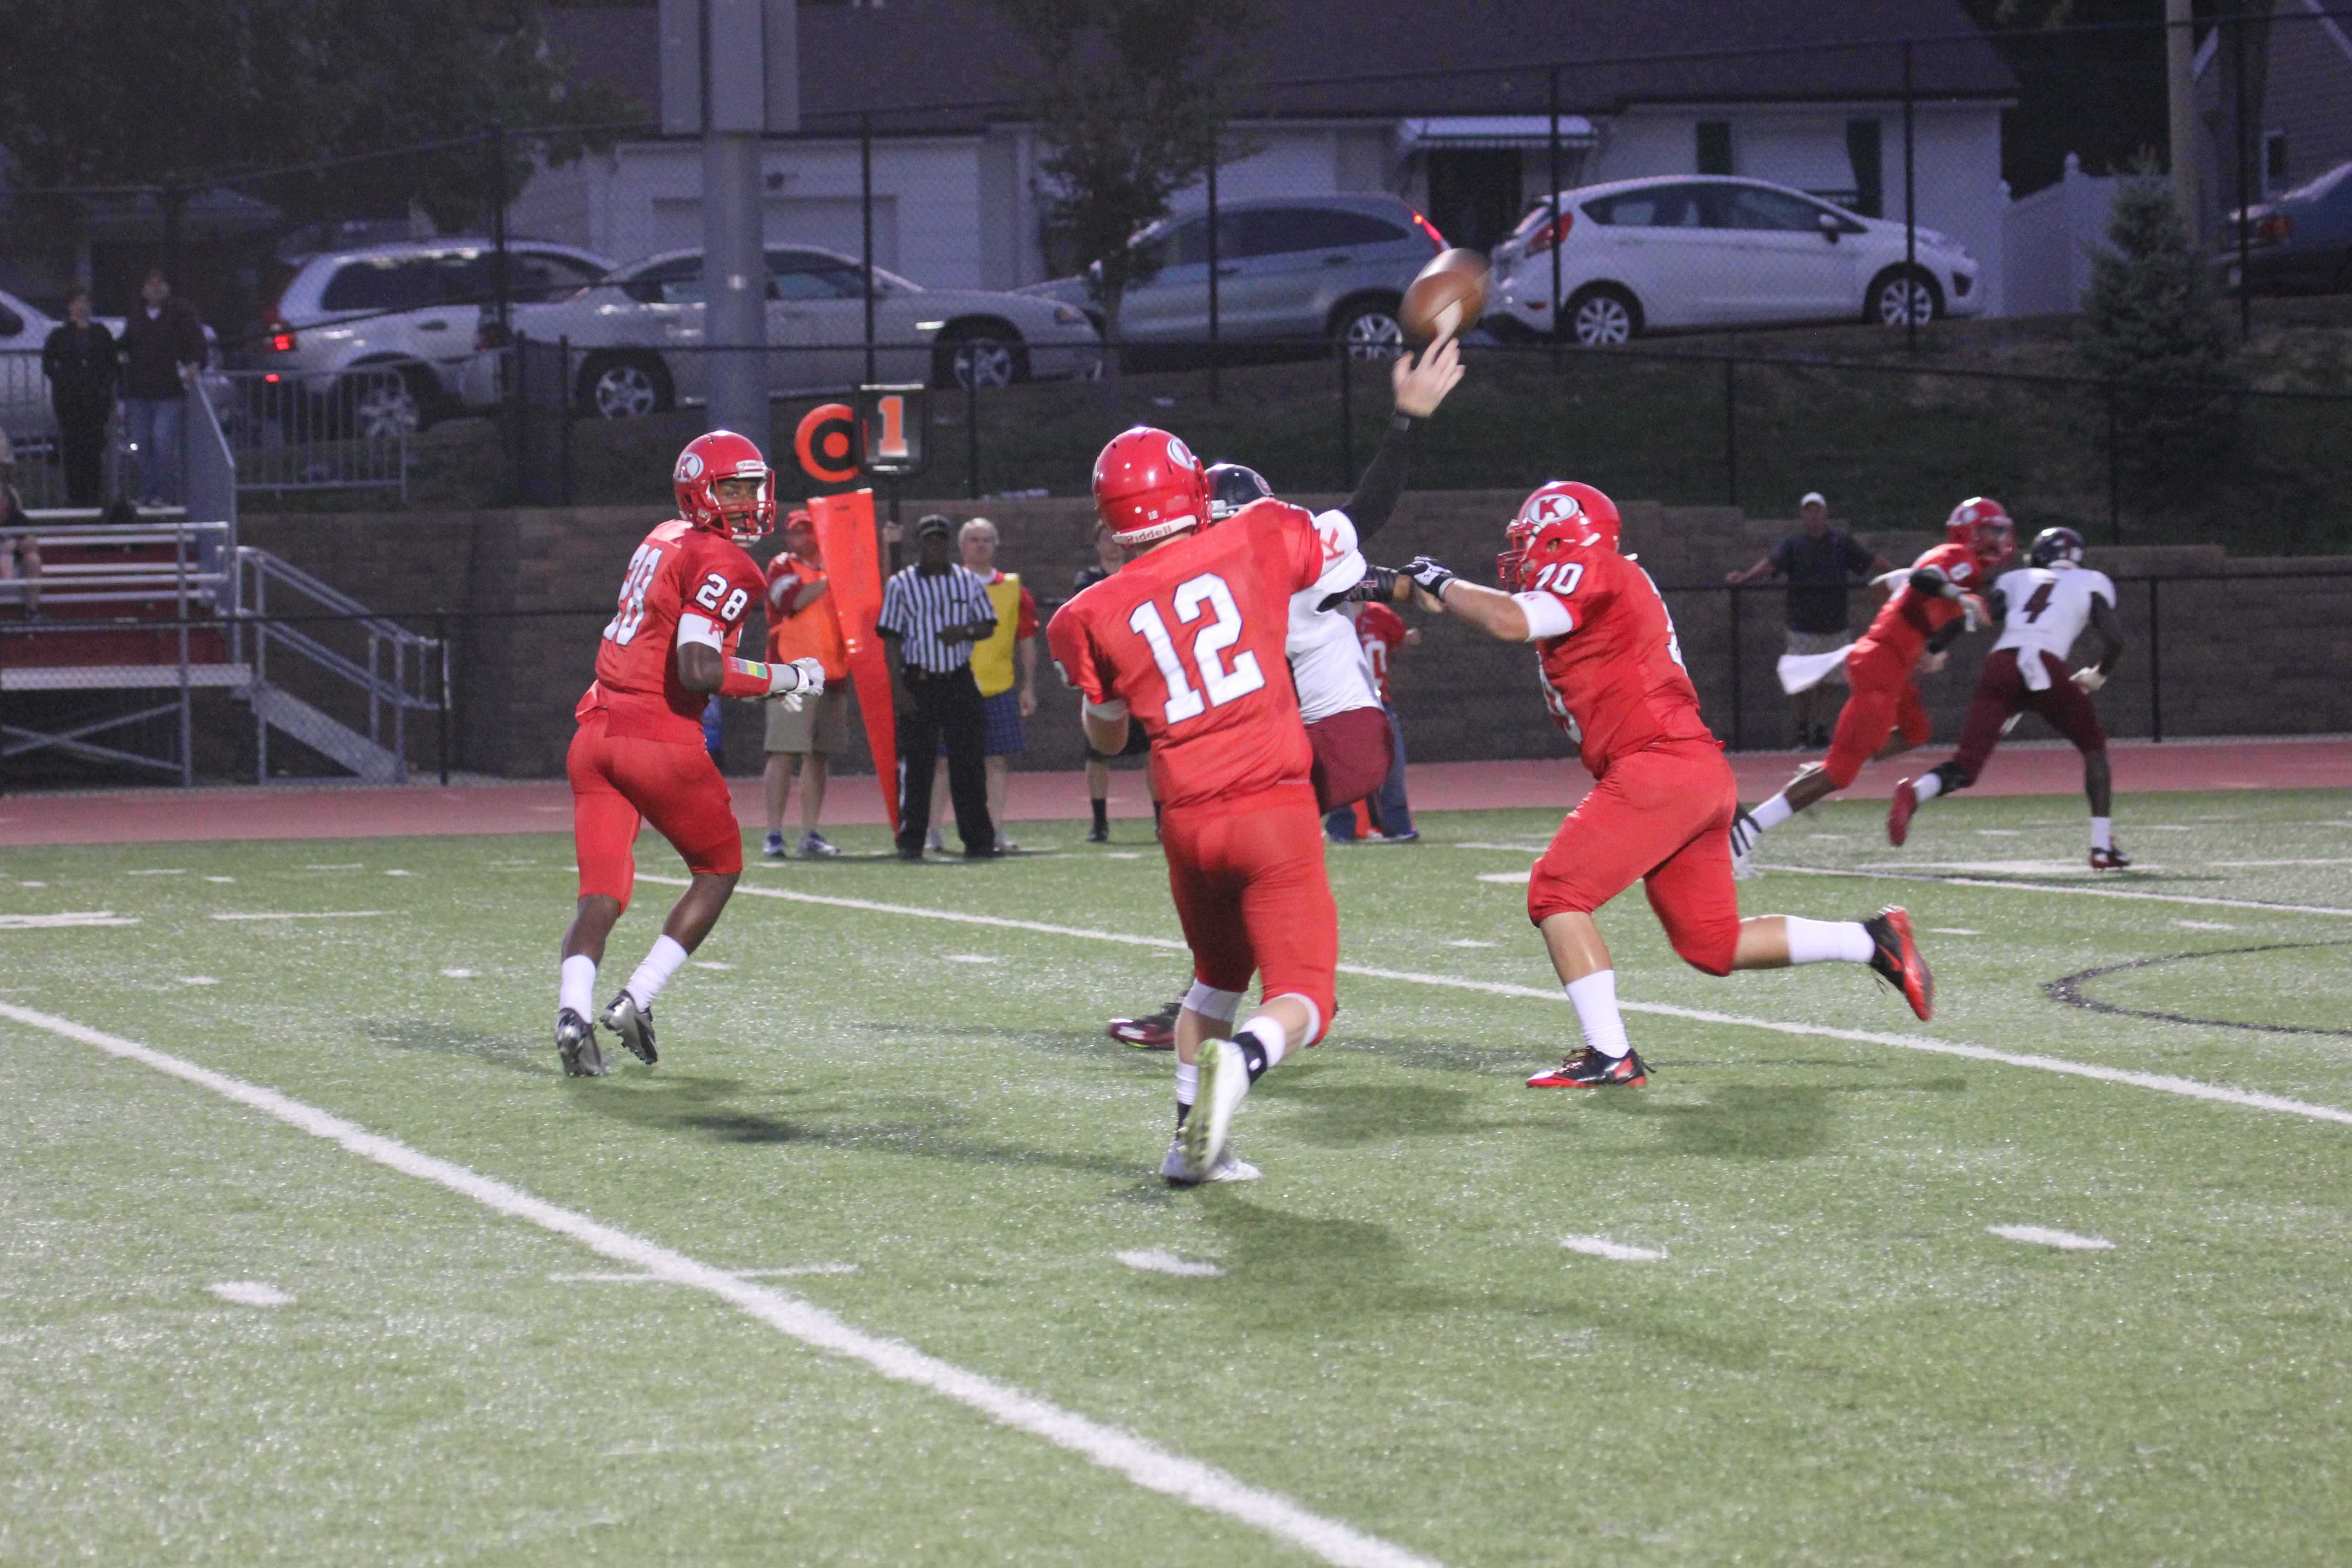 Wil Hadler, senior quarterback, takes a shot at the end zone during Kirkwood's 52-28 victory against Rockwood Summit.